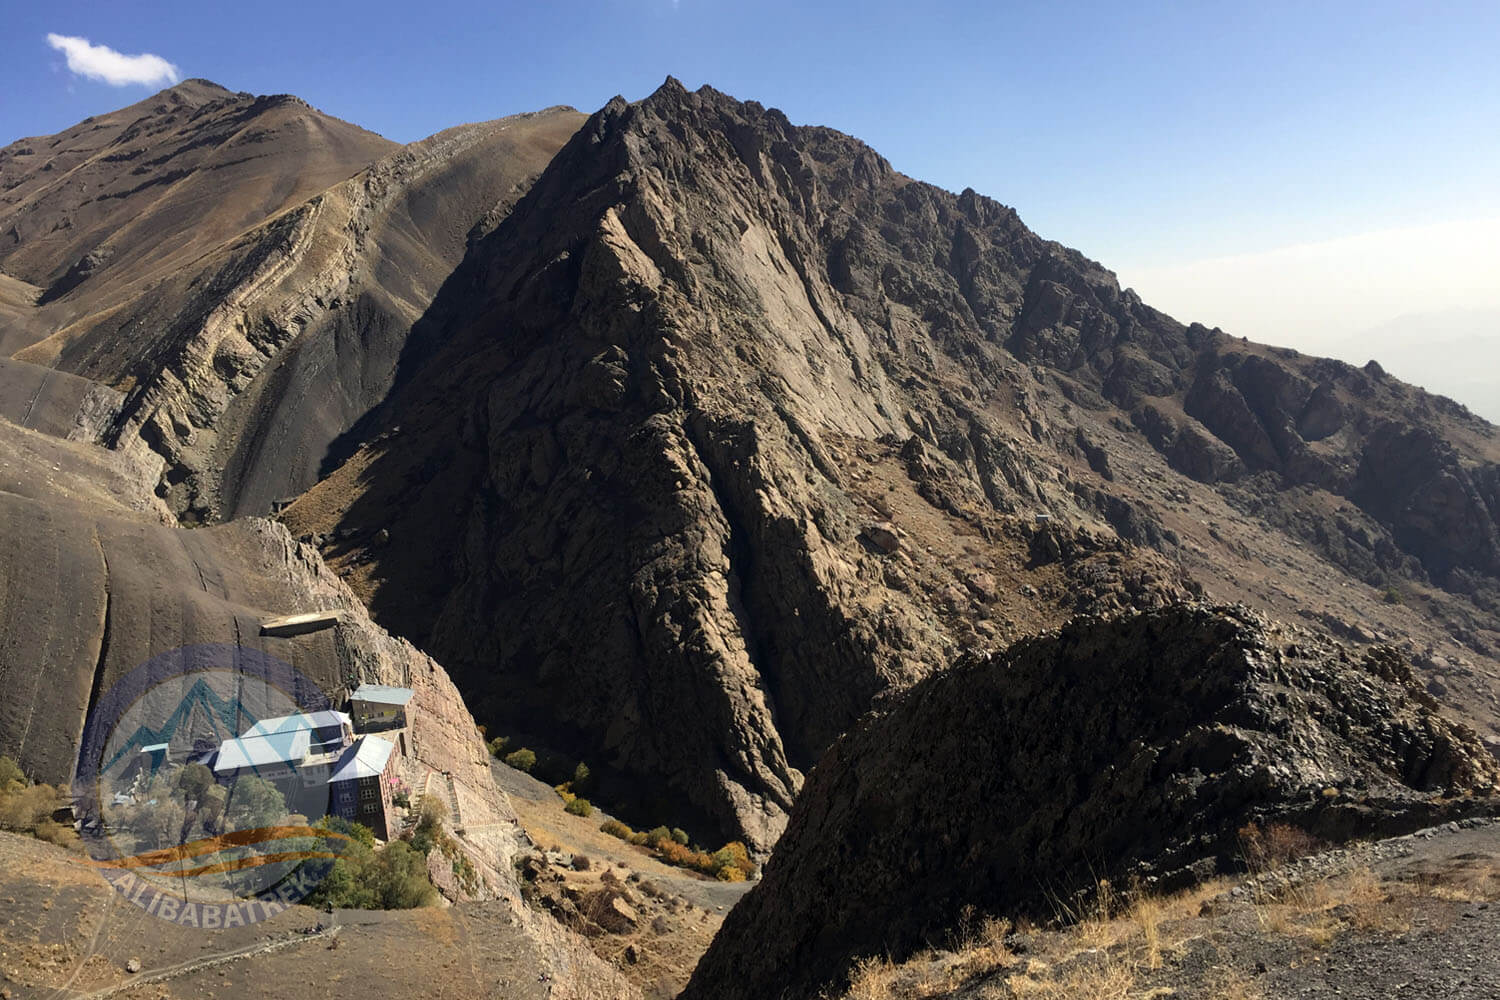 Alibabatrek iran tour packages mount tochal tochal tehran tochal trekking tour tochal hiking trek tochal mount tehran attractions what to see in tehran